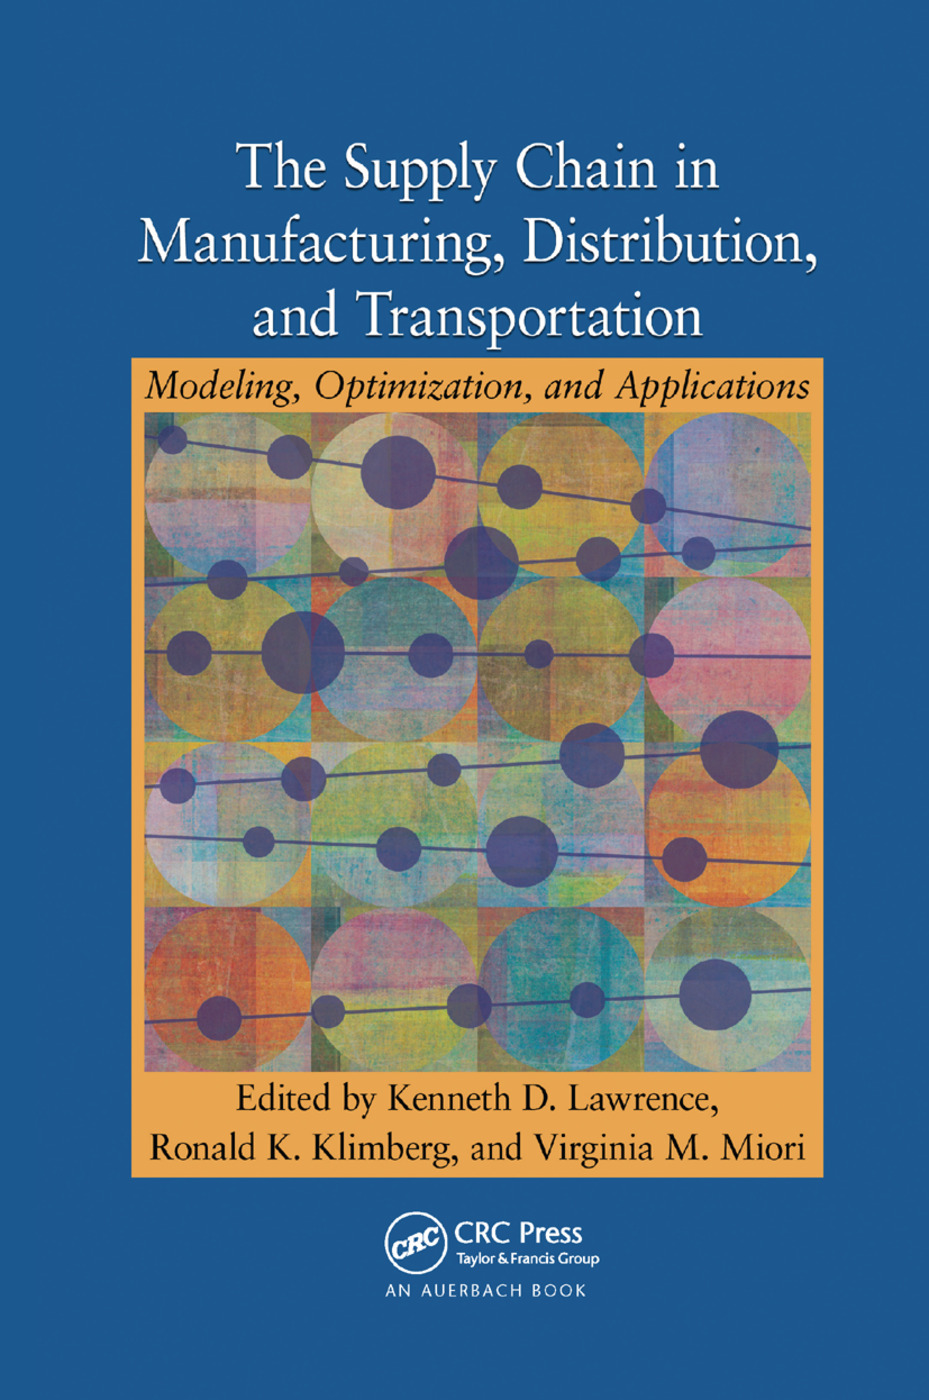 The Supply Chain in Manufacturing, Distribution, and Transportation: Modeling, Optimization, and Applications book cover